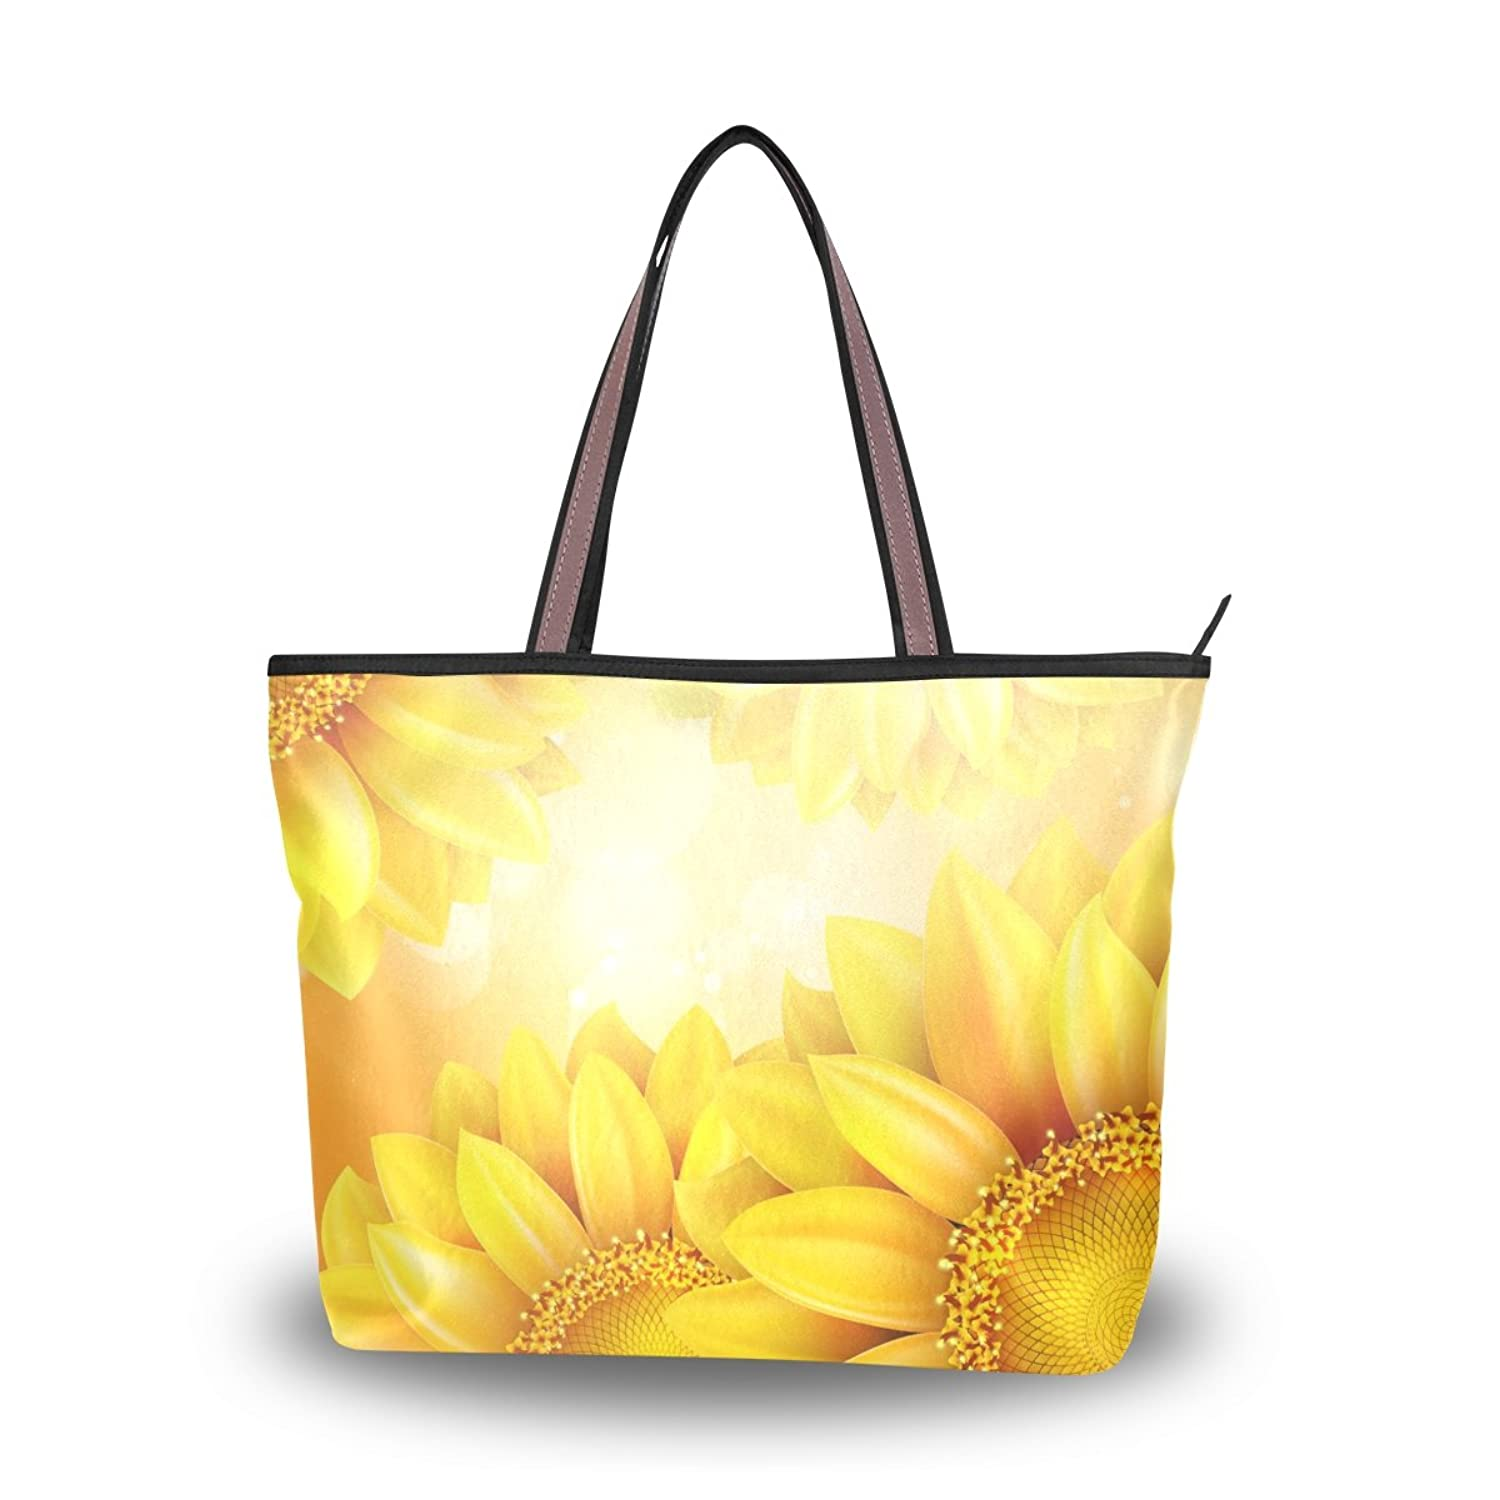 Senya Women's Handbag Microfiber Large Tote Shoulder Bag, Sunflower Helianthus